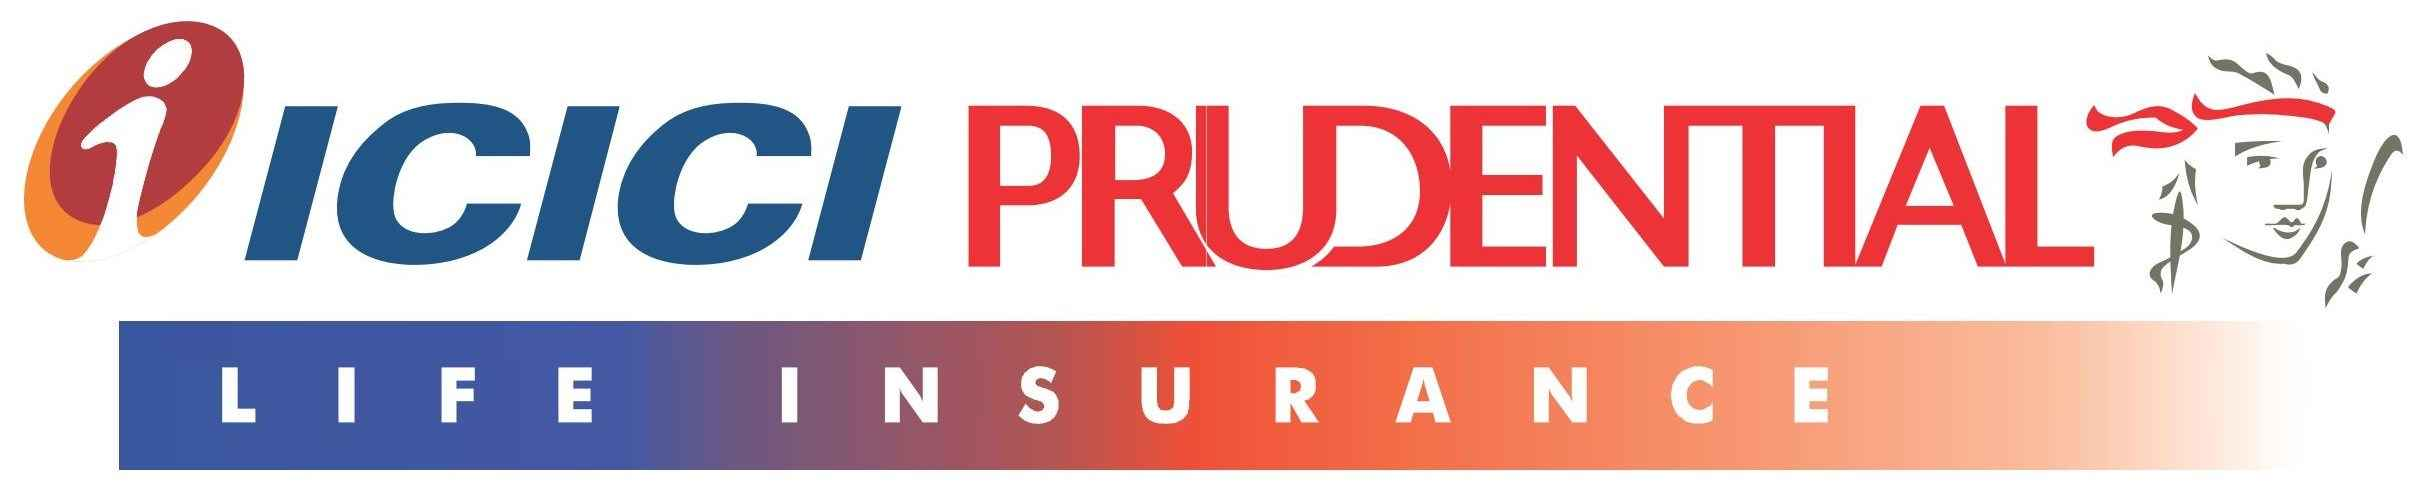 Prudential Life Insurance Quote Prudential Life Insurance Quote Uk  44Billionlater